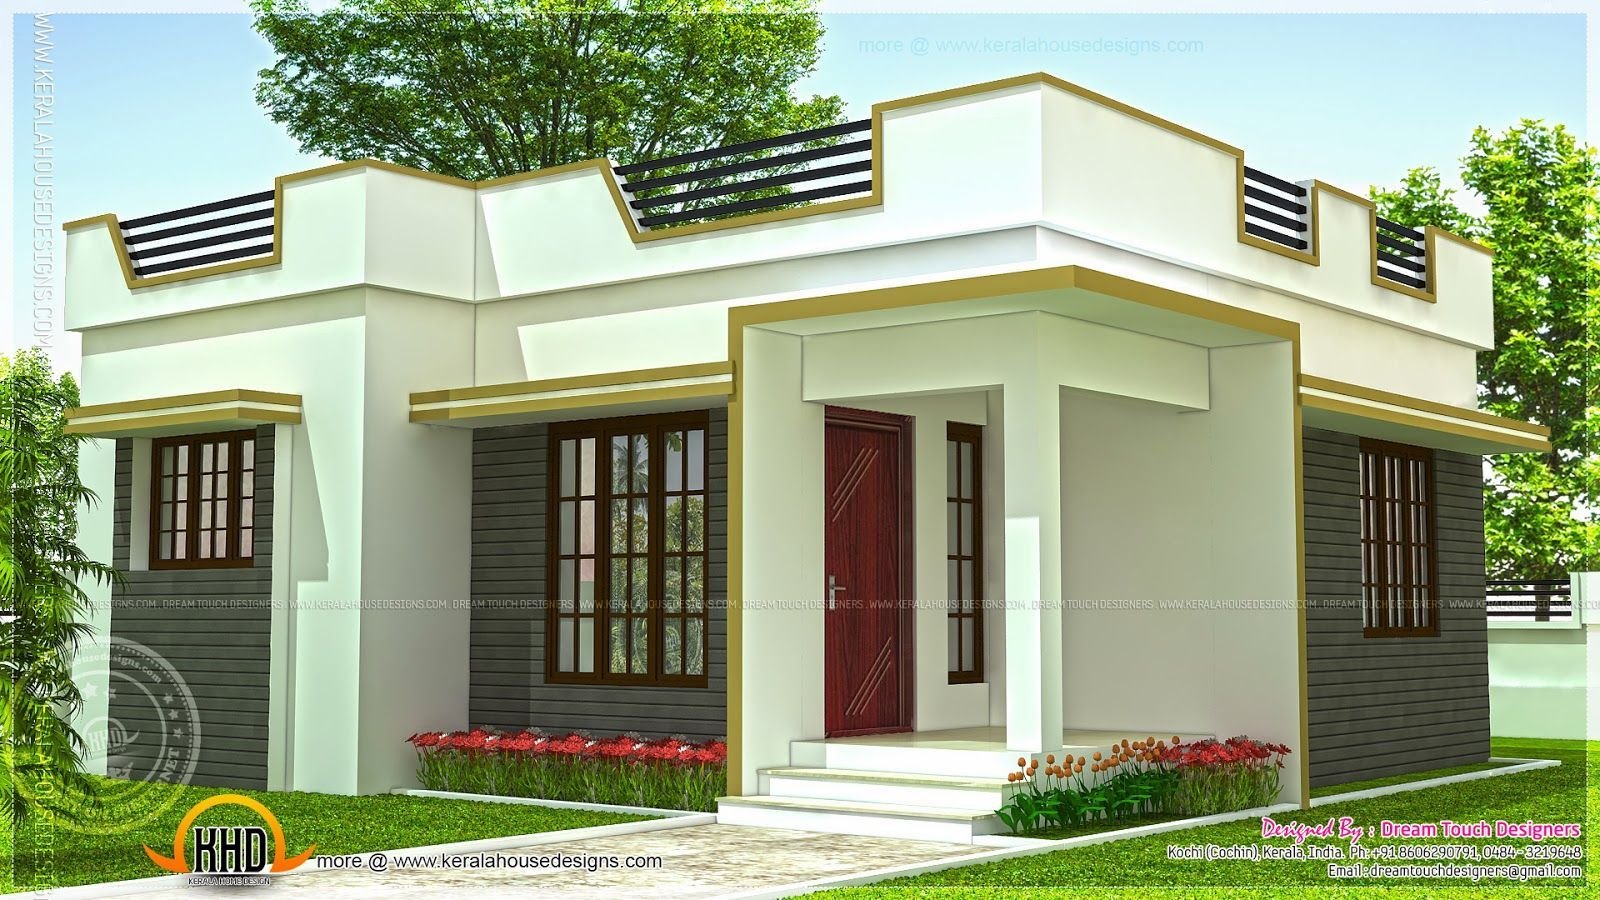 Best Small House Design Tricks Tiny House Nation Episodes Thetinyhouse House Roof Design Kerala House Design Small House Design Kerala